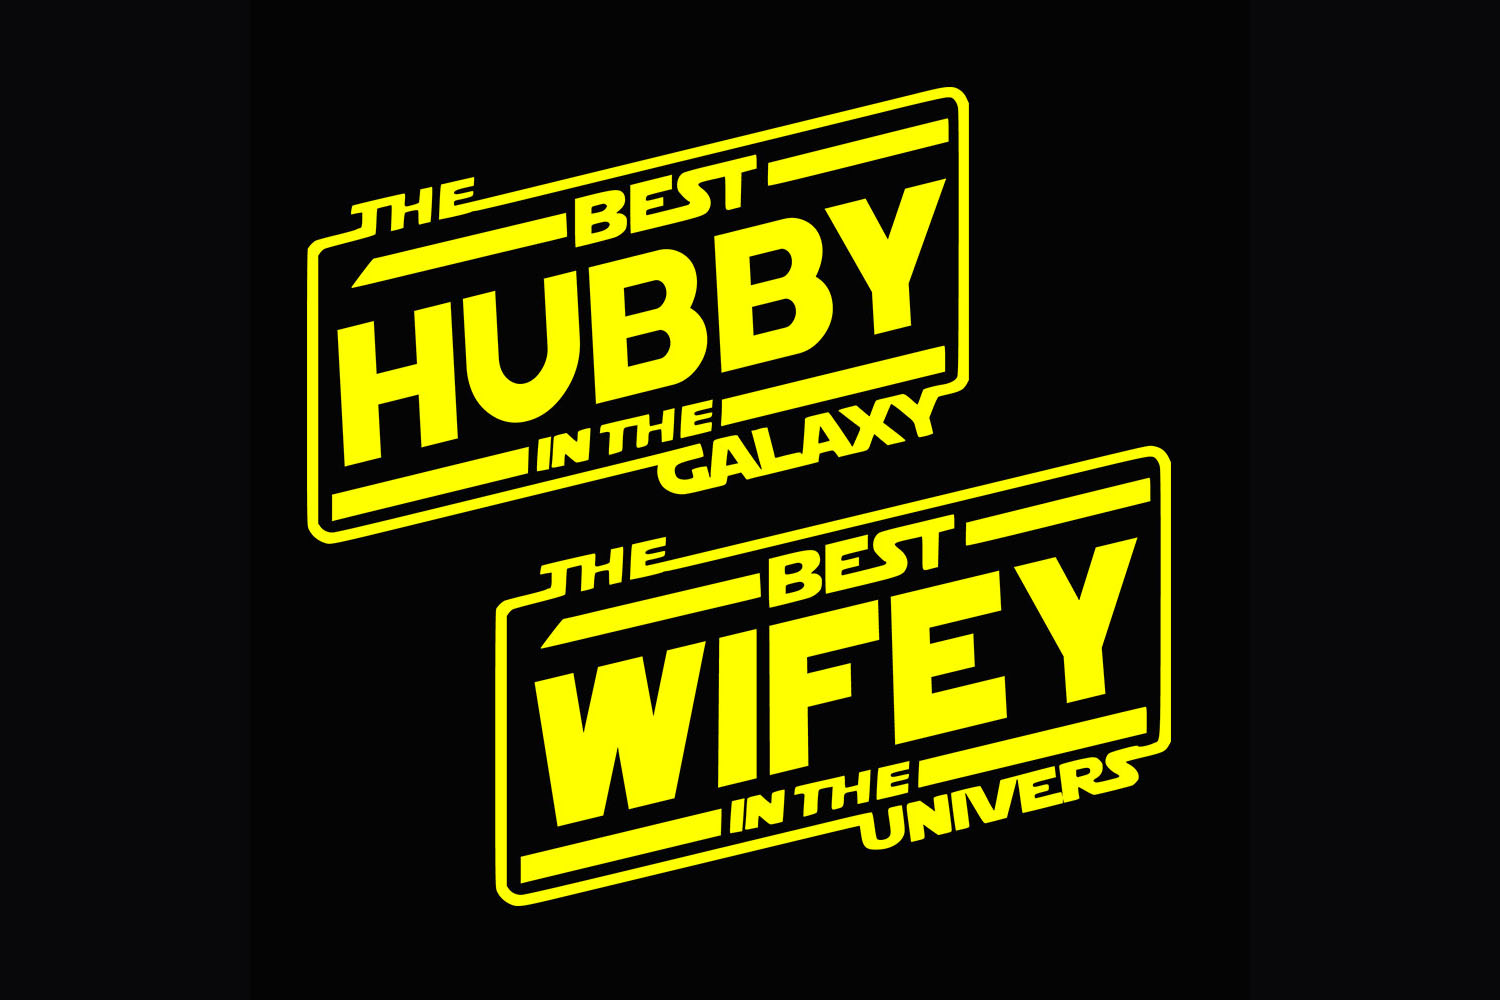 Husband Svg, hubby, Svg, wife Svg, hubby Graphics, husband example image 1